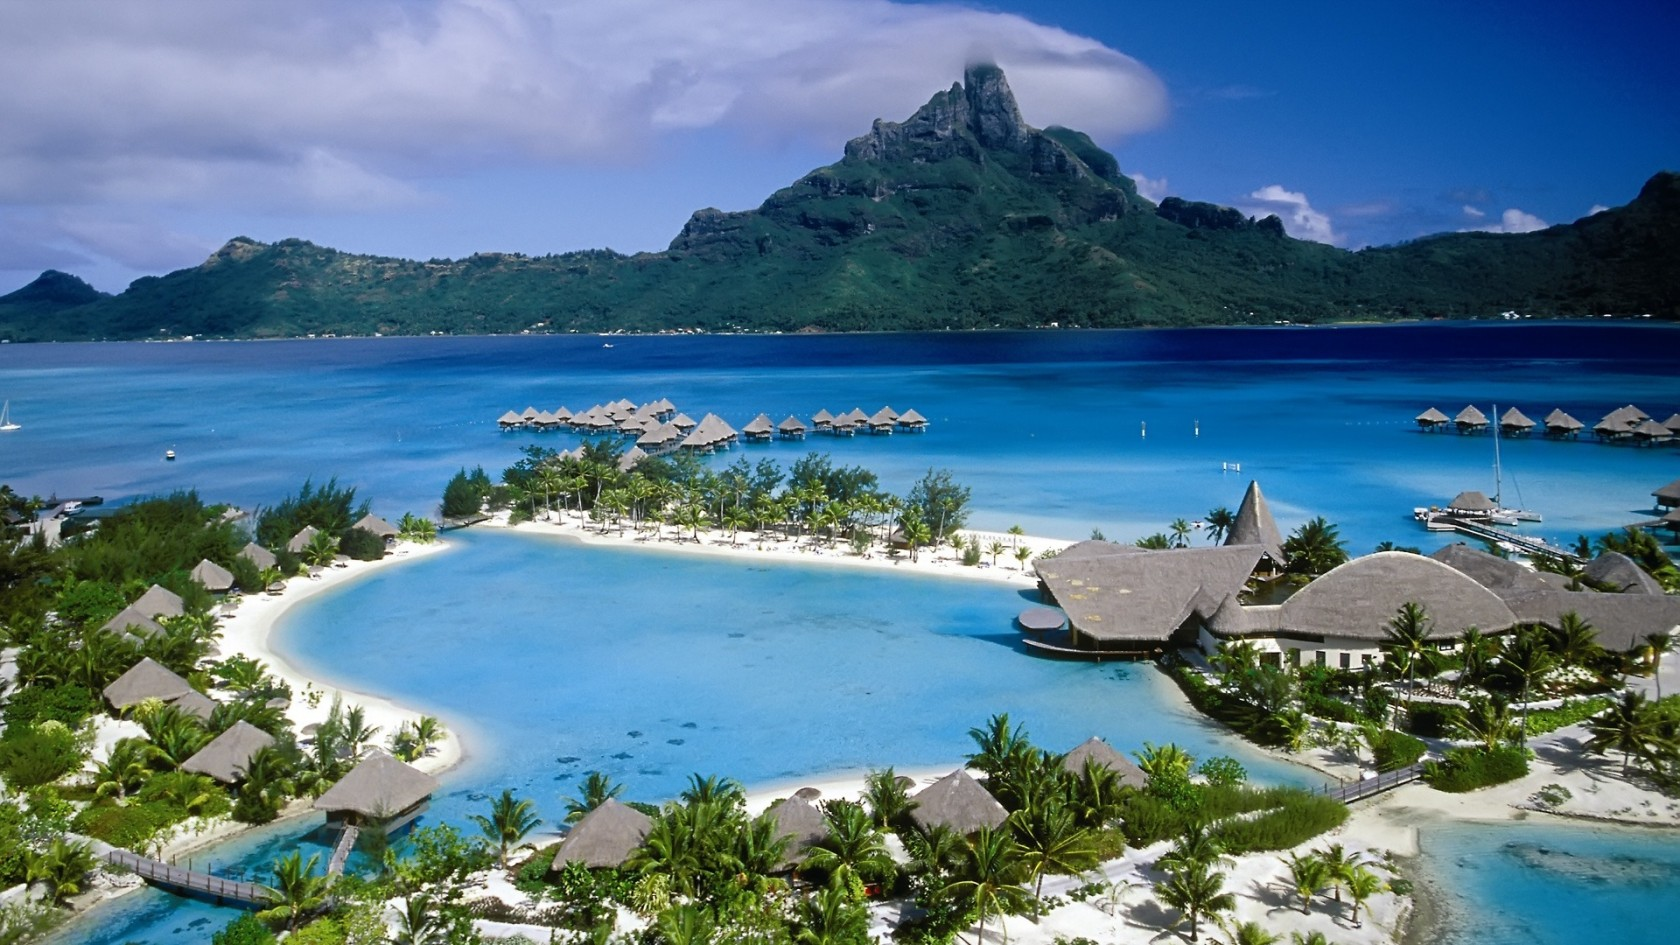 Beach Resort HD Wallpaper of Beach - hdwallpaper2013.com